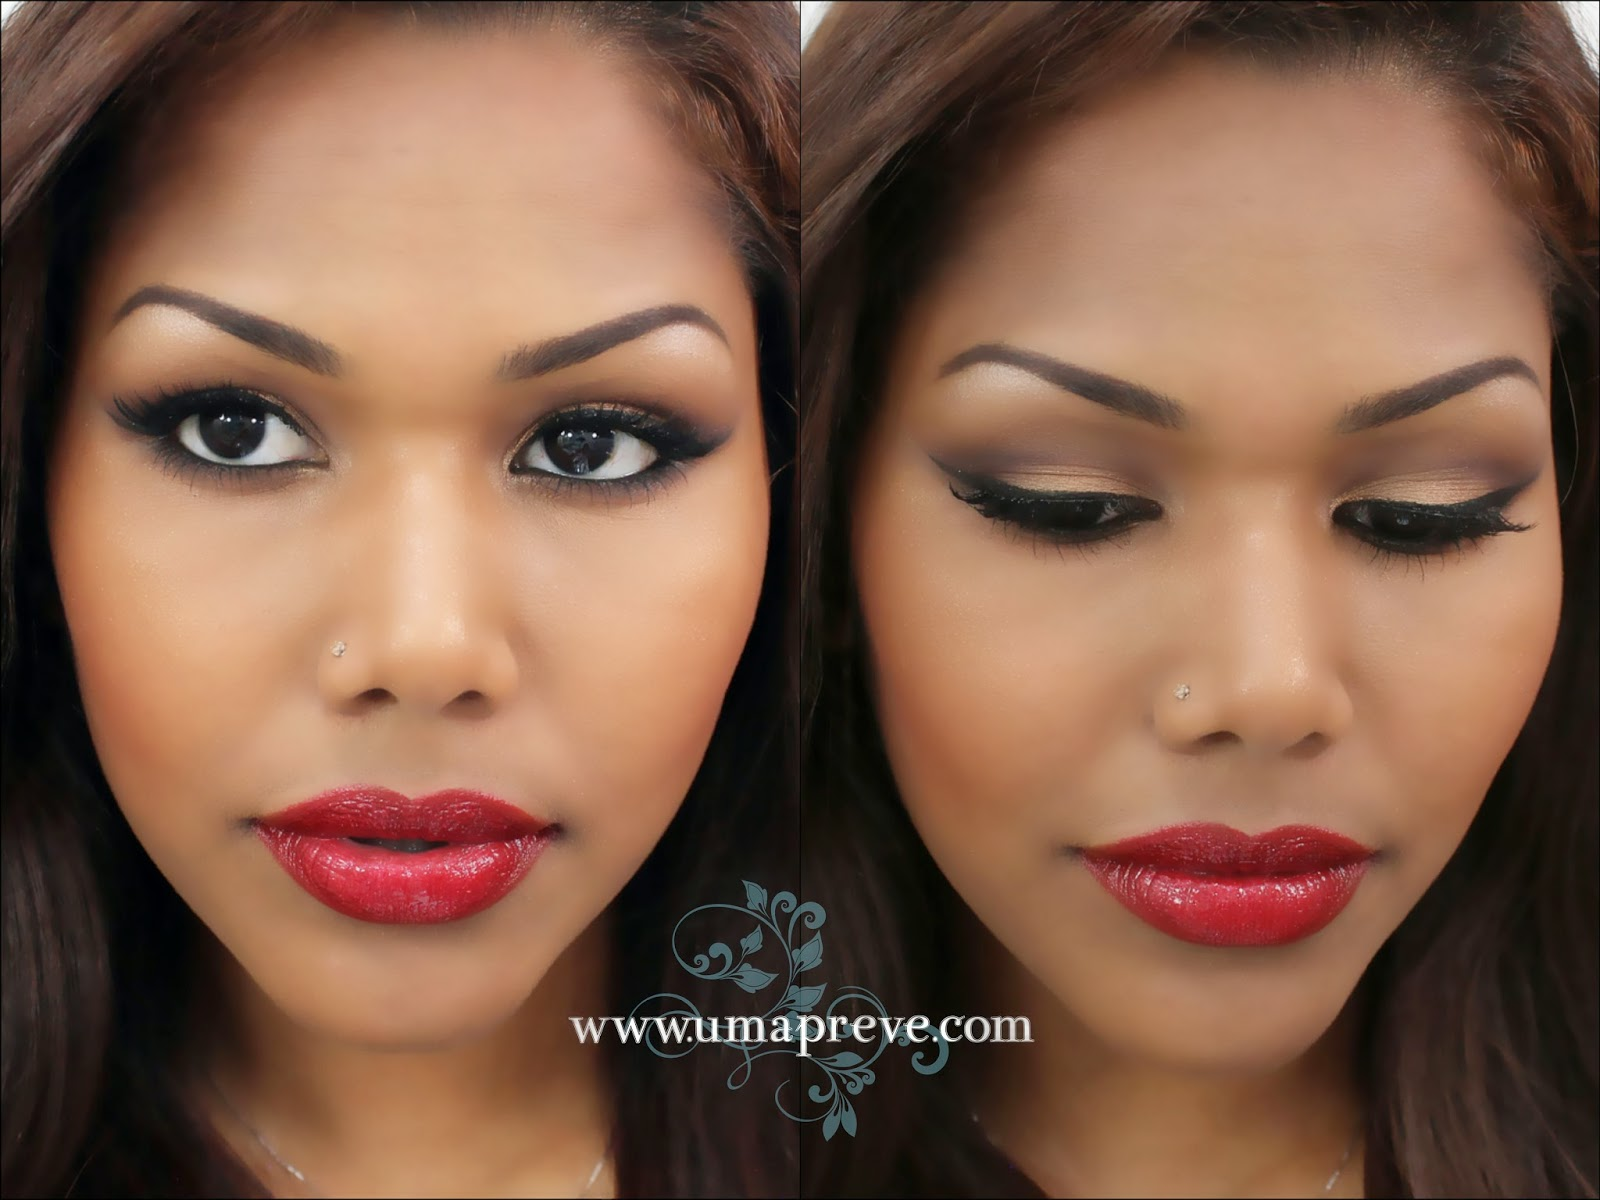 Umapreve bronzy smokey eyes with red lipstick lorac pro palette bronzy smokey eyes with red lips makeup look using the lorac pro palette the star product for this makeup is the viva glam lipstick in rihanna baditri Gallery